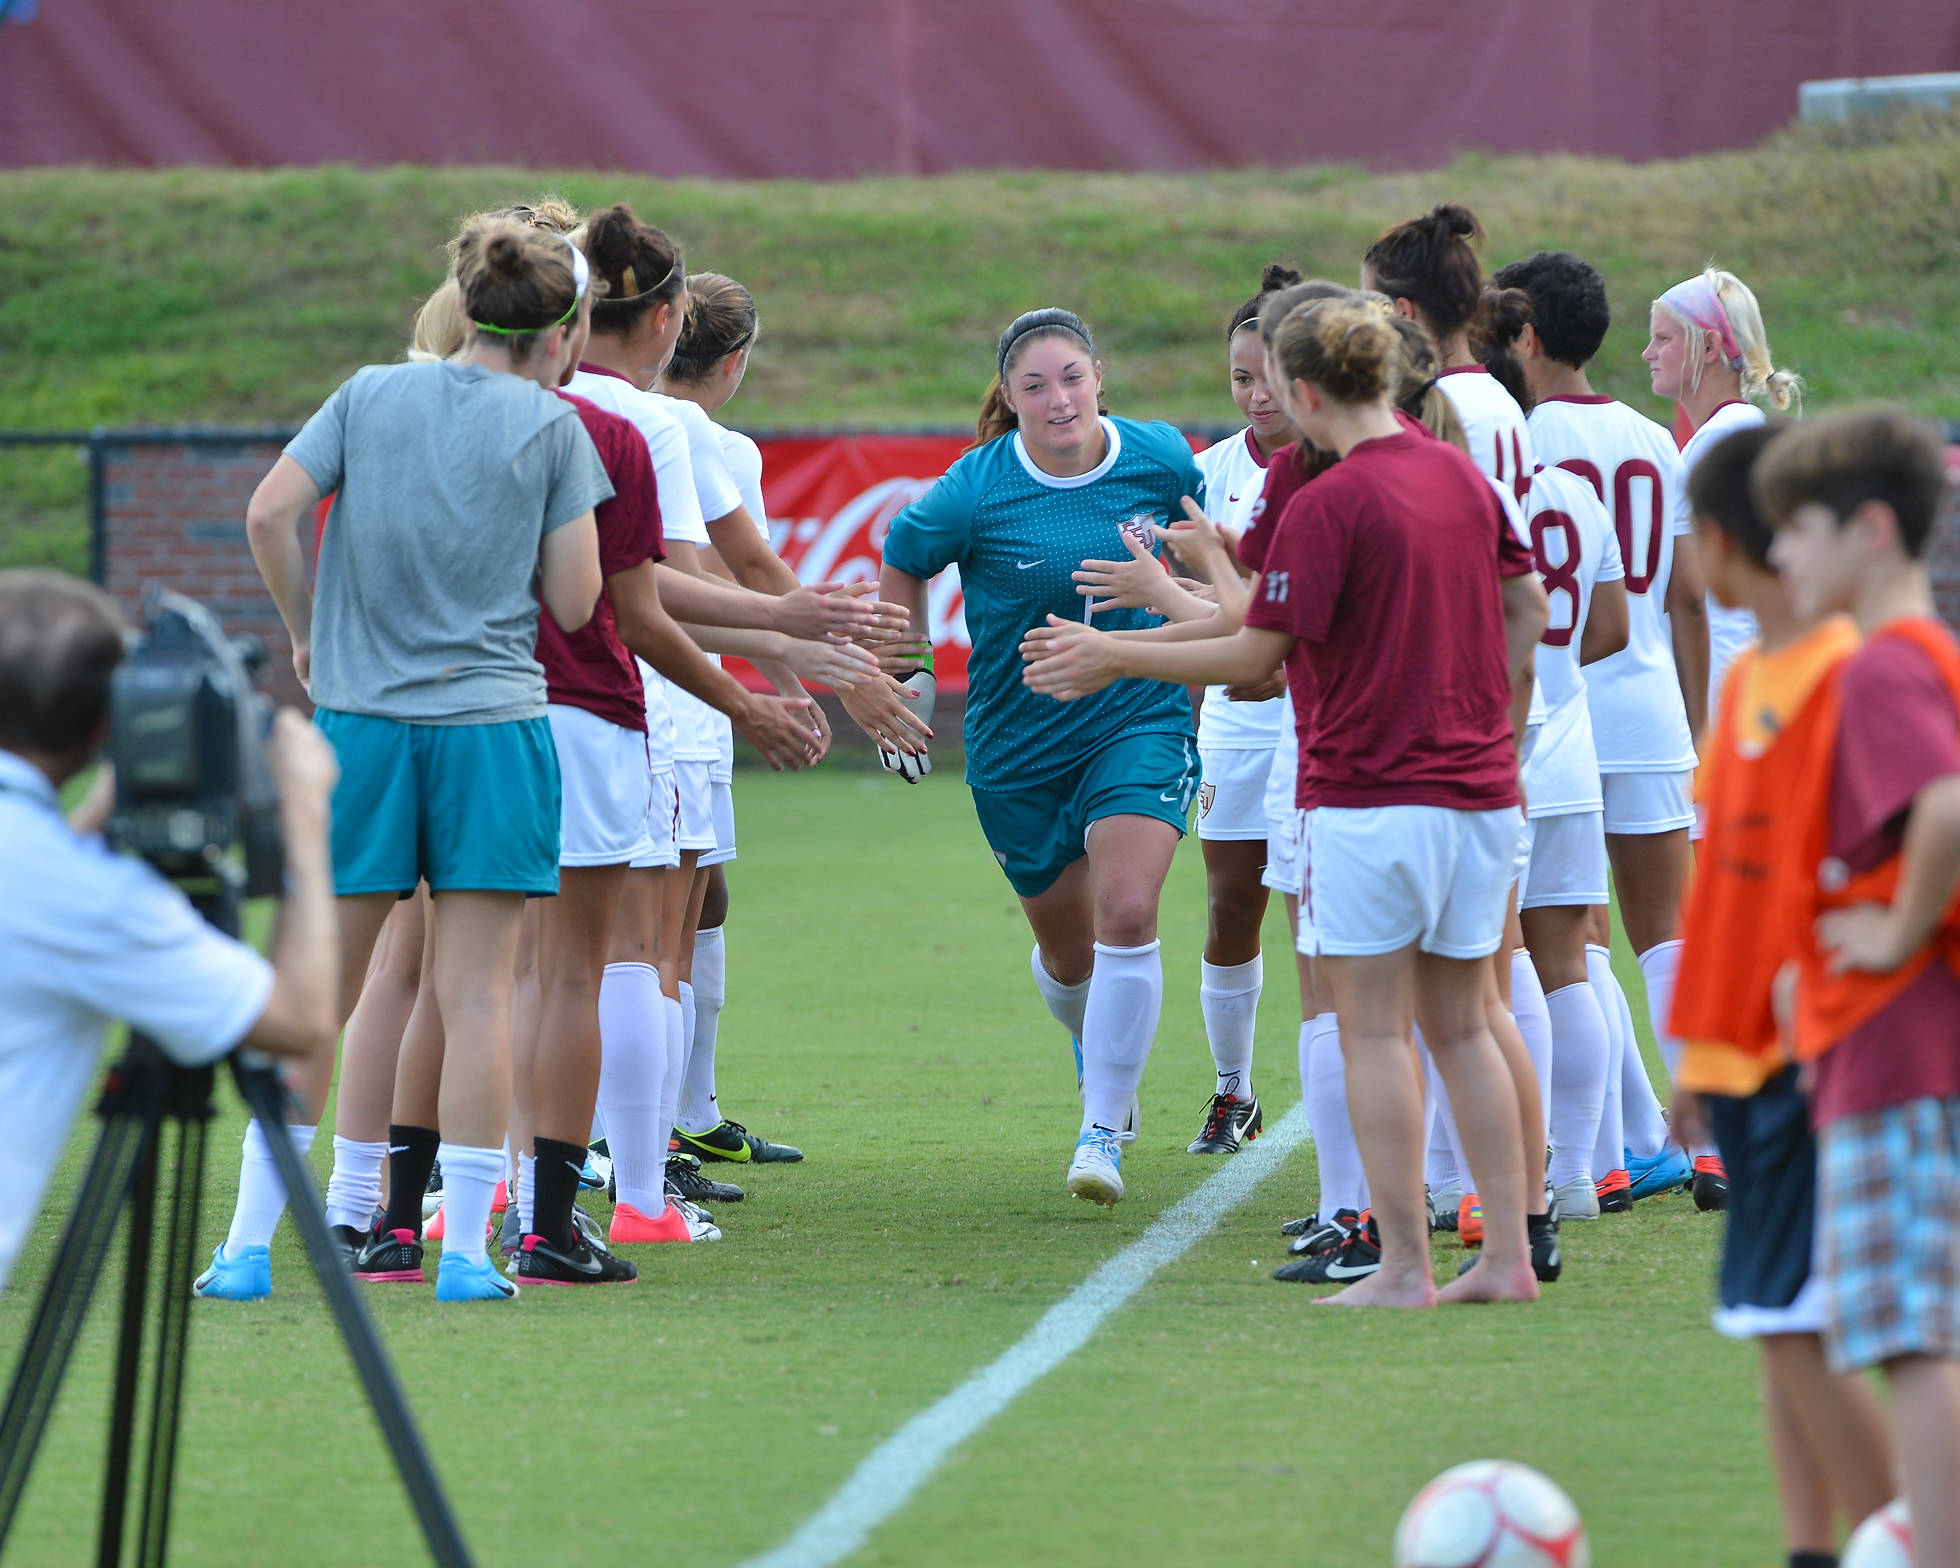 Taylor Vancil runs through the tunnel during pre-game starting line-ups.